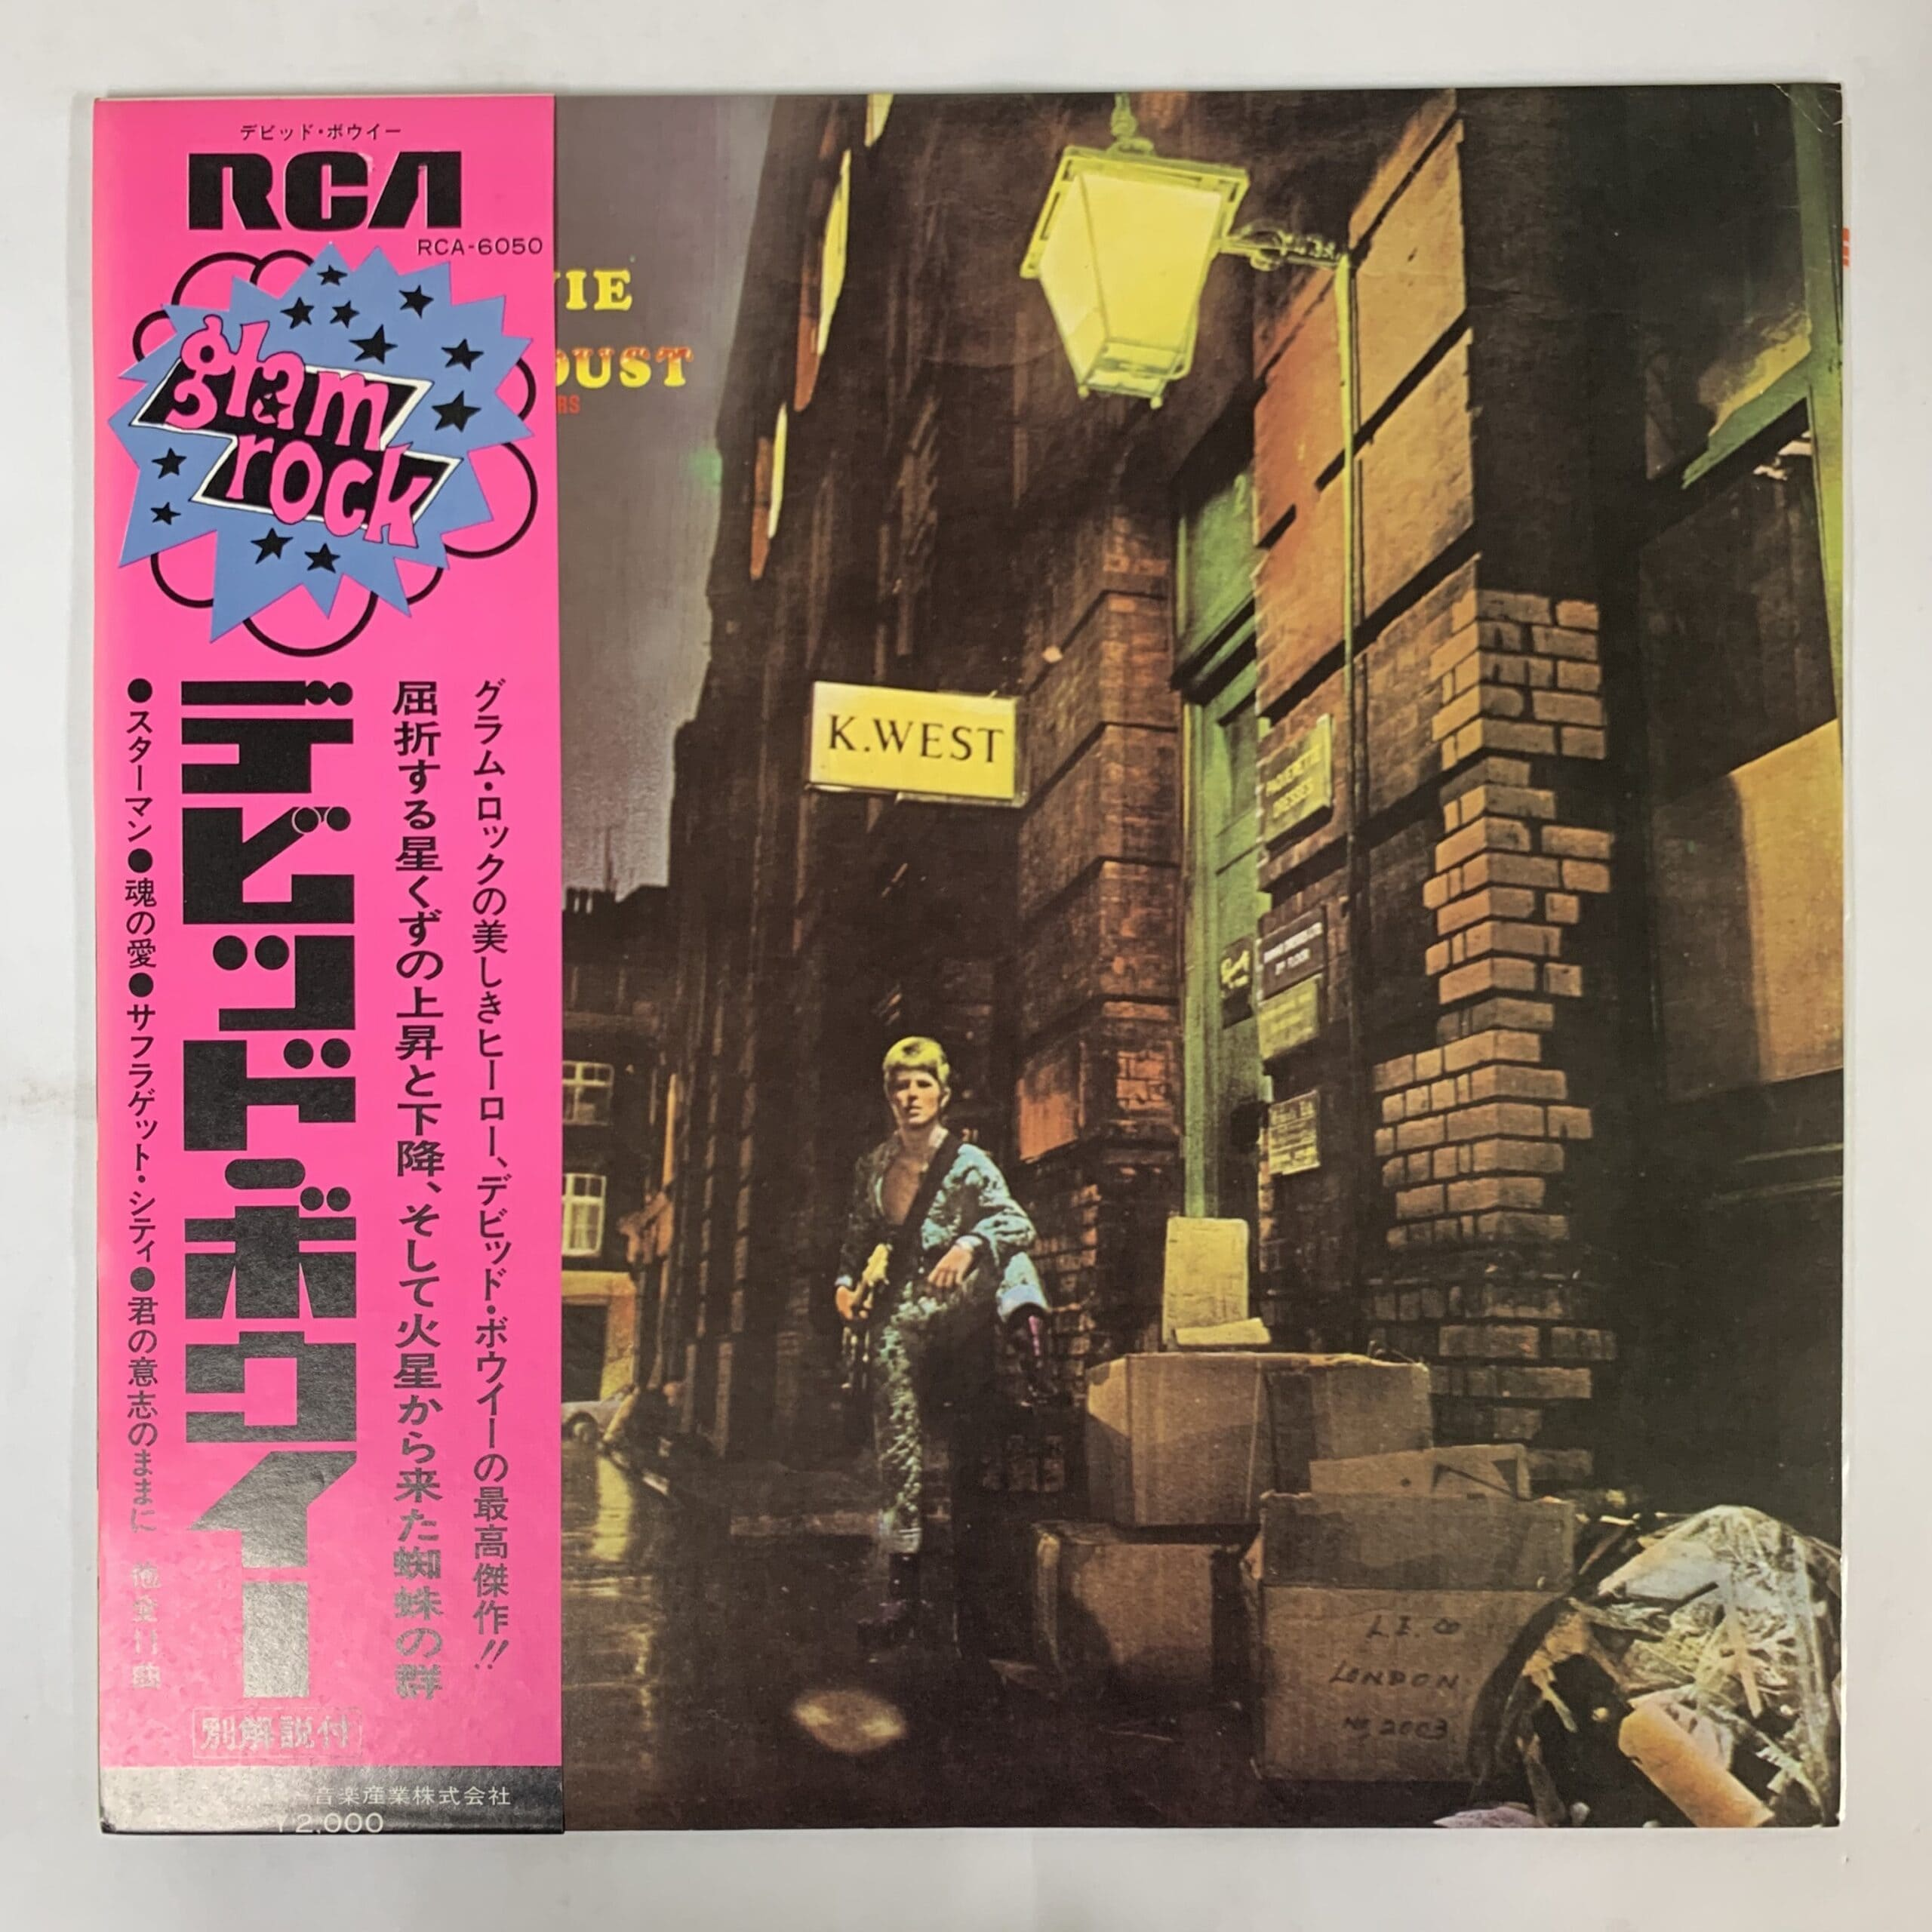 David Bowie/The Rise And Fall Of Ziggy Stardust And The Spiders From Mars/RCA-6050/glam rock帯付